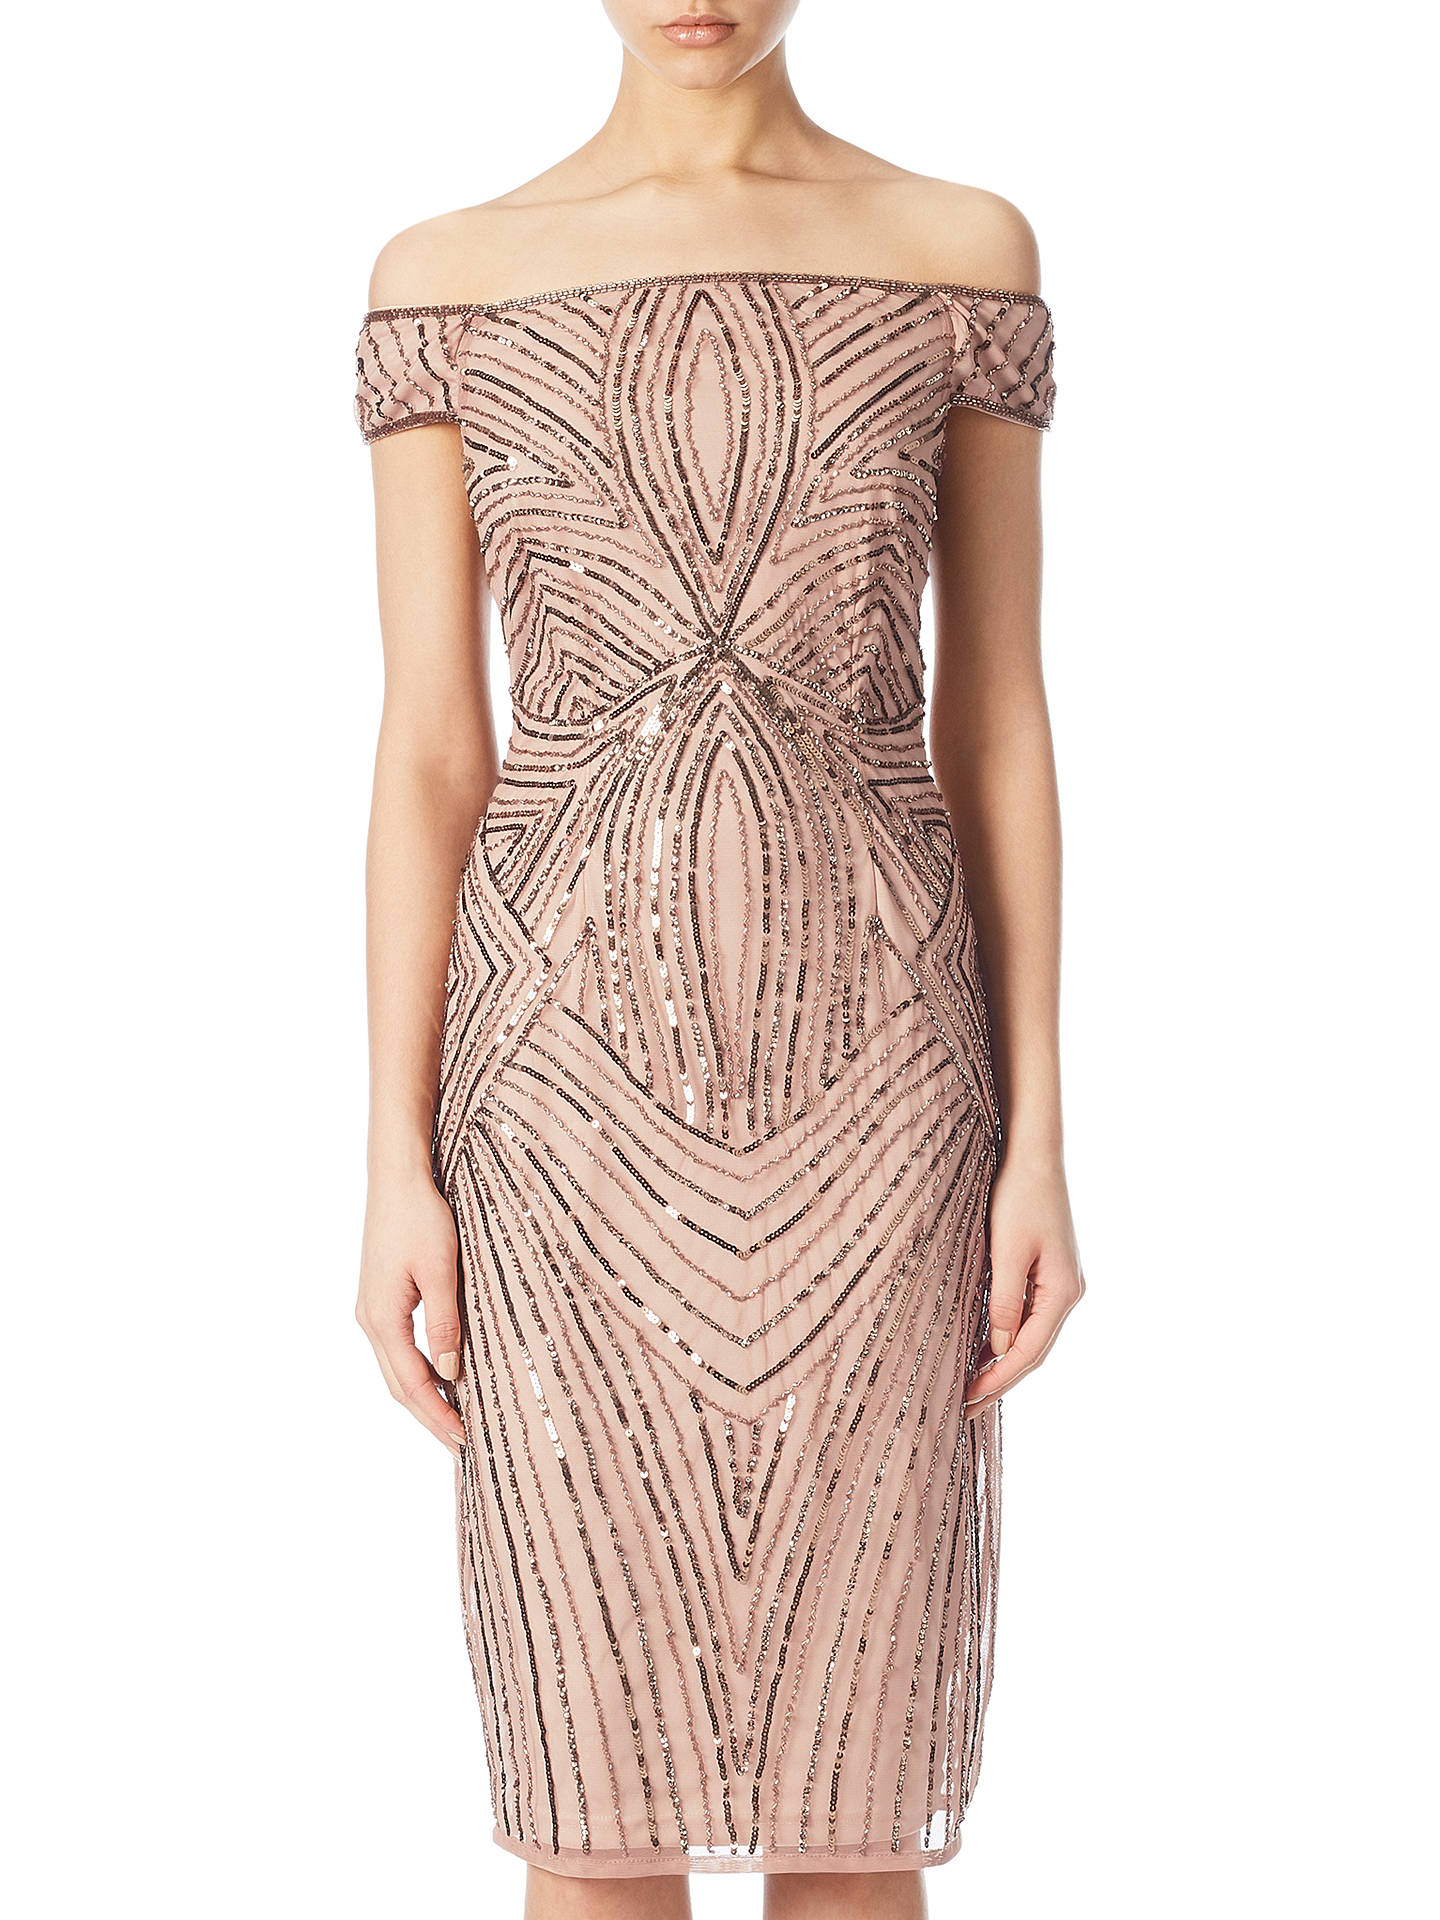 3a897ca237d Buy Adrianna Papell Petite Off Shoulder Beaded Cocktail Dress